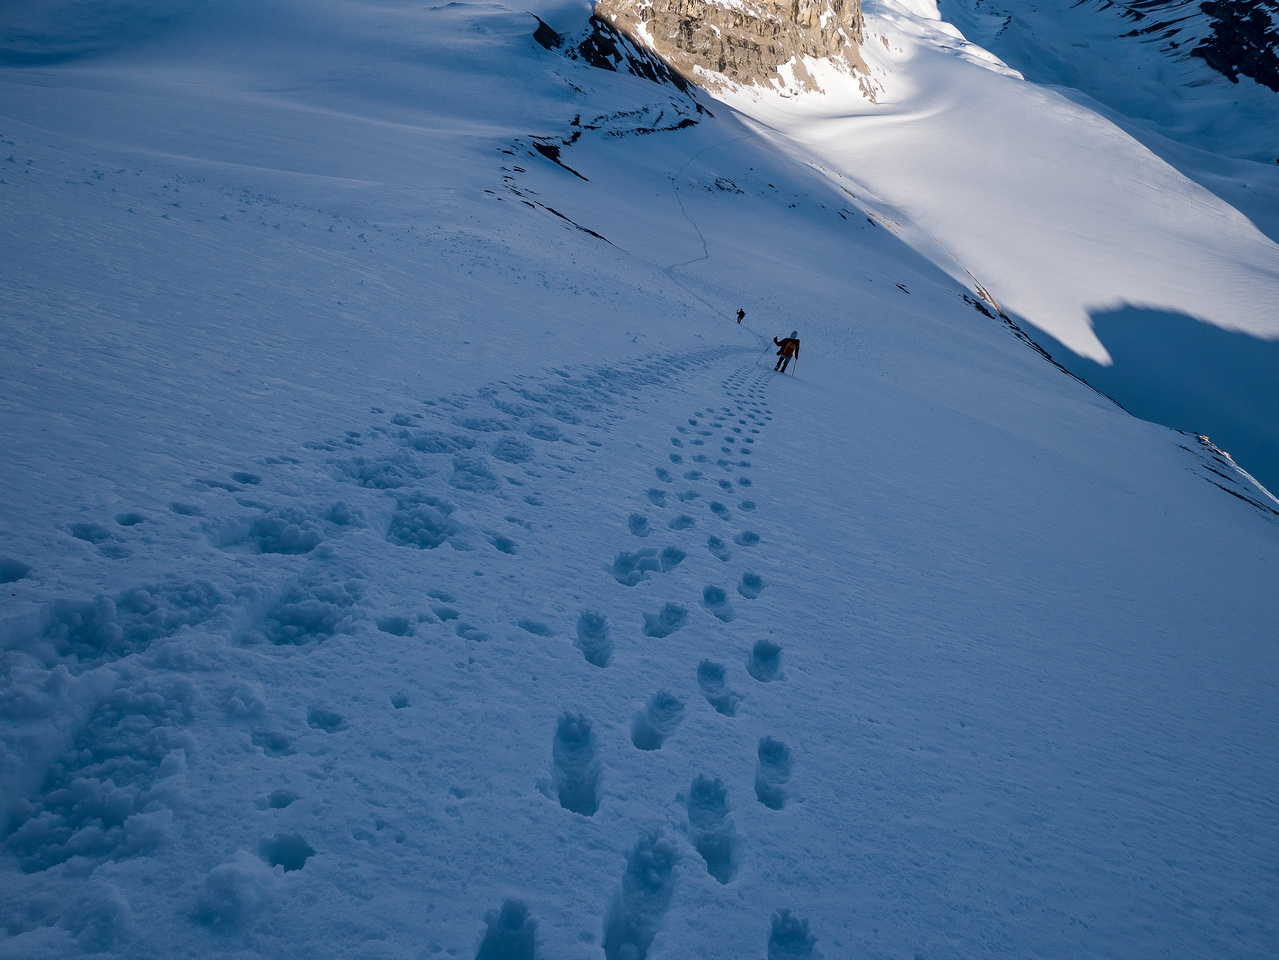 A steep and fast descent down the 30 degree face to the Huntington Glacier.